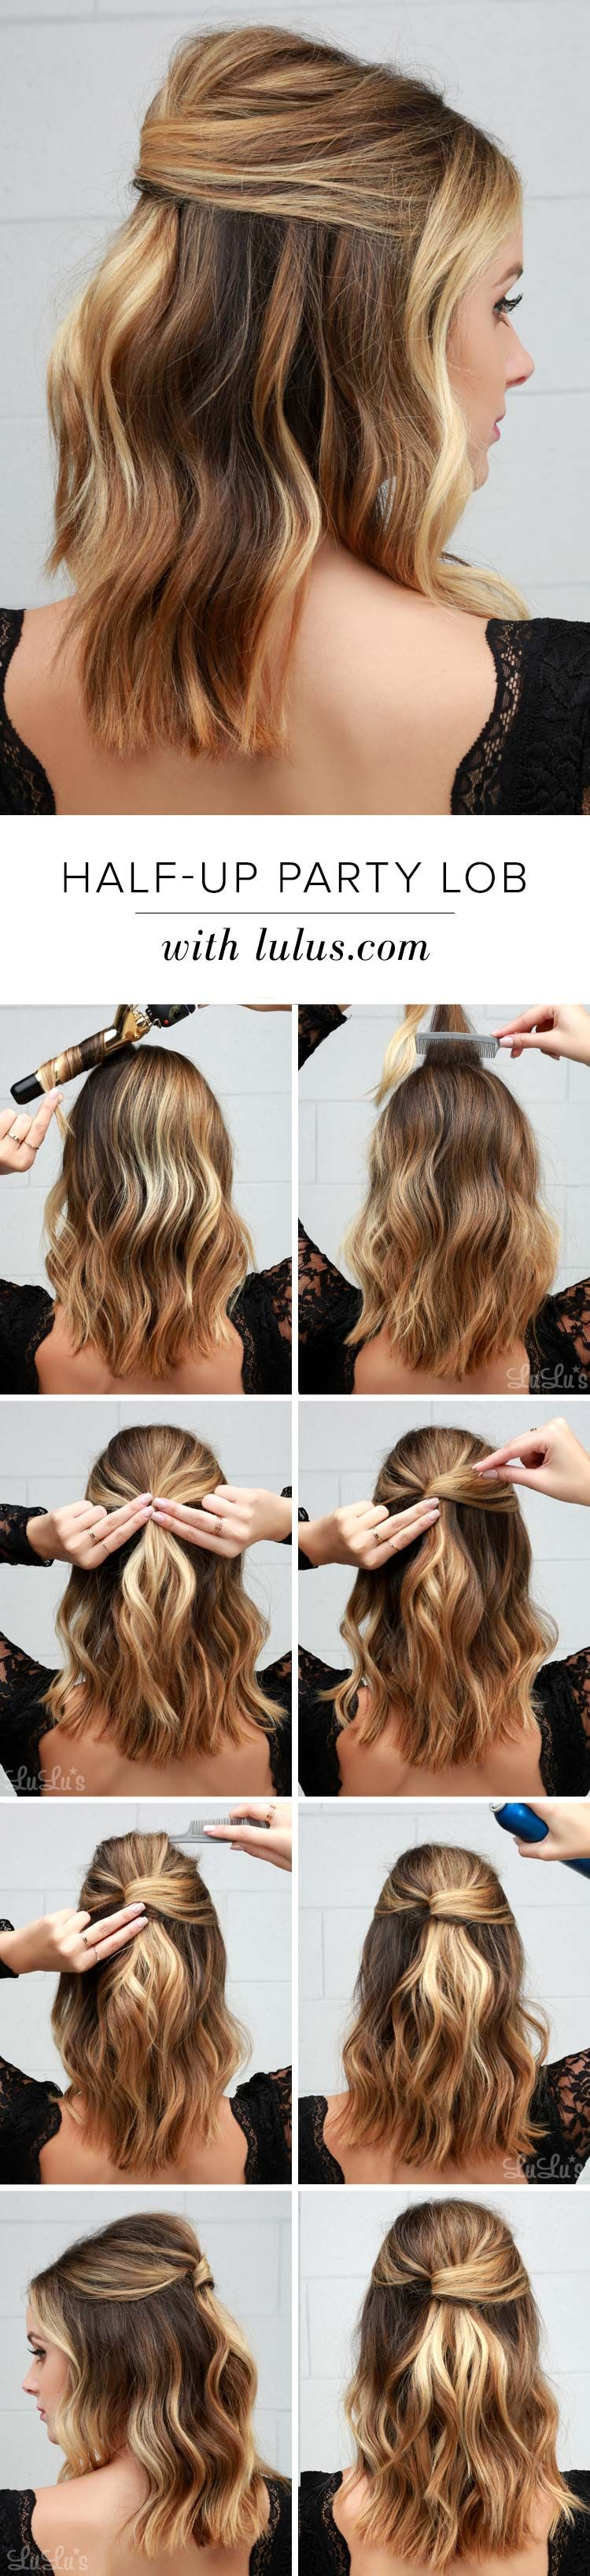 Lulus howto halfup party lob ponytail pinterest hair